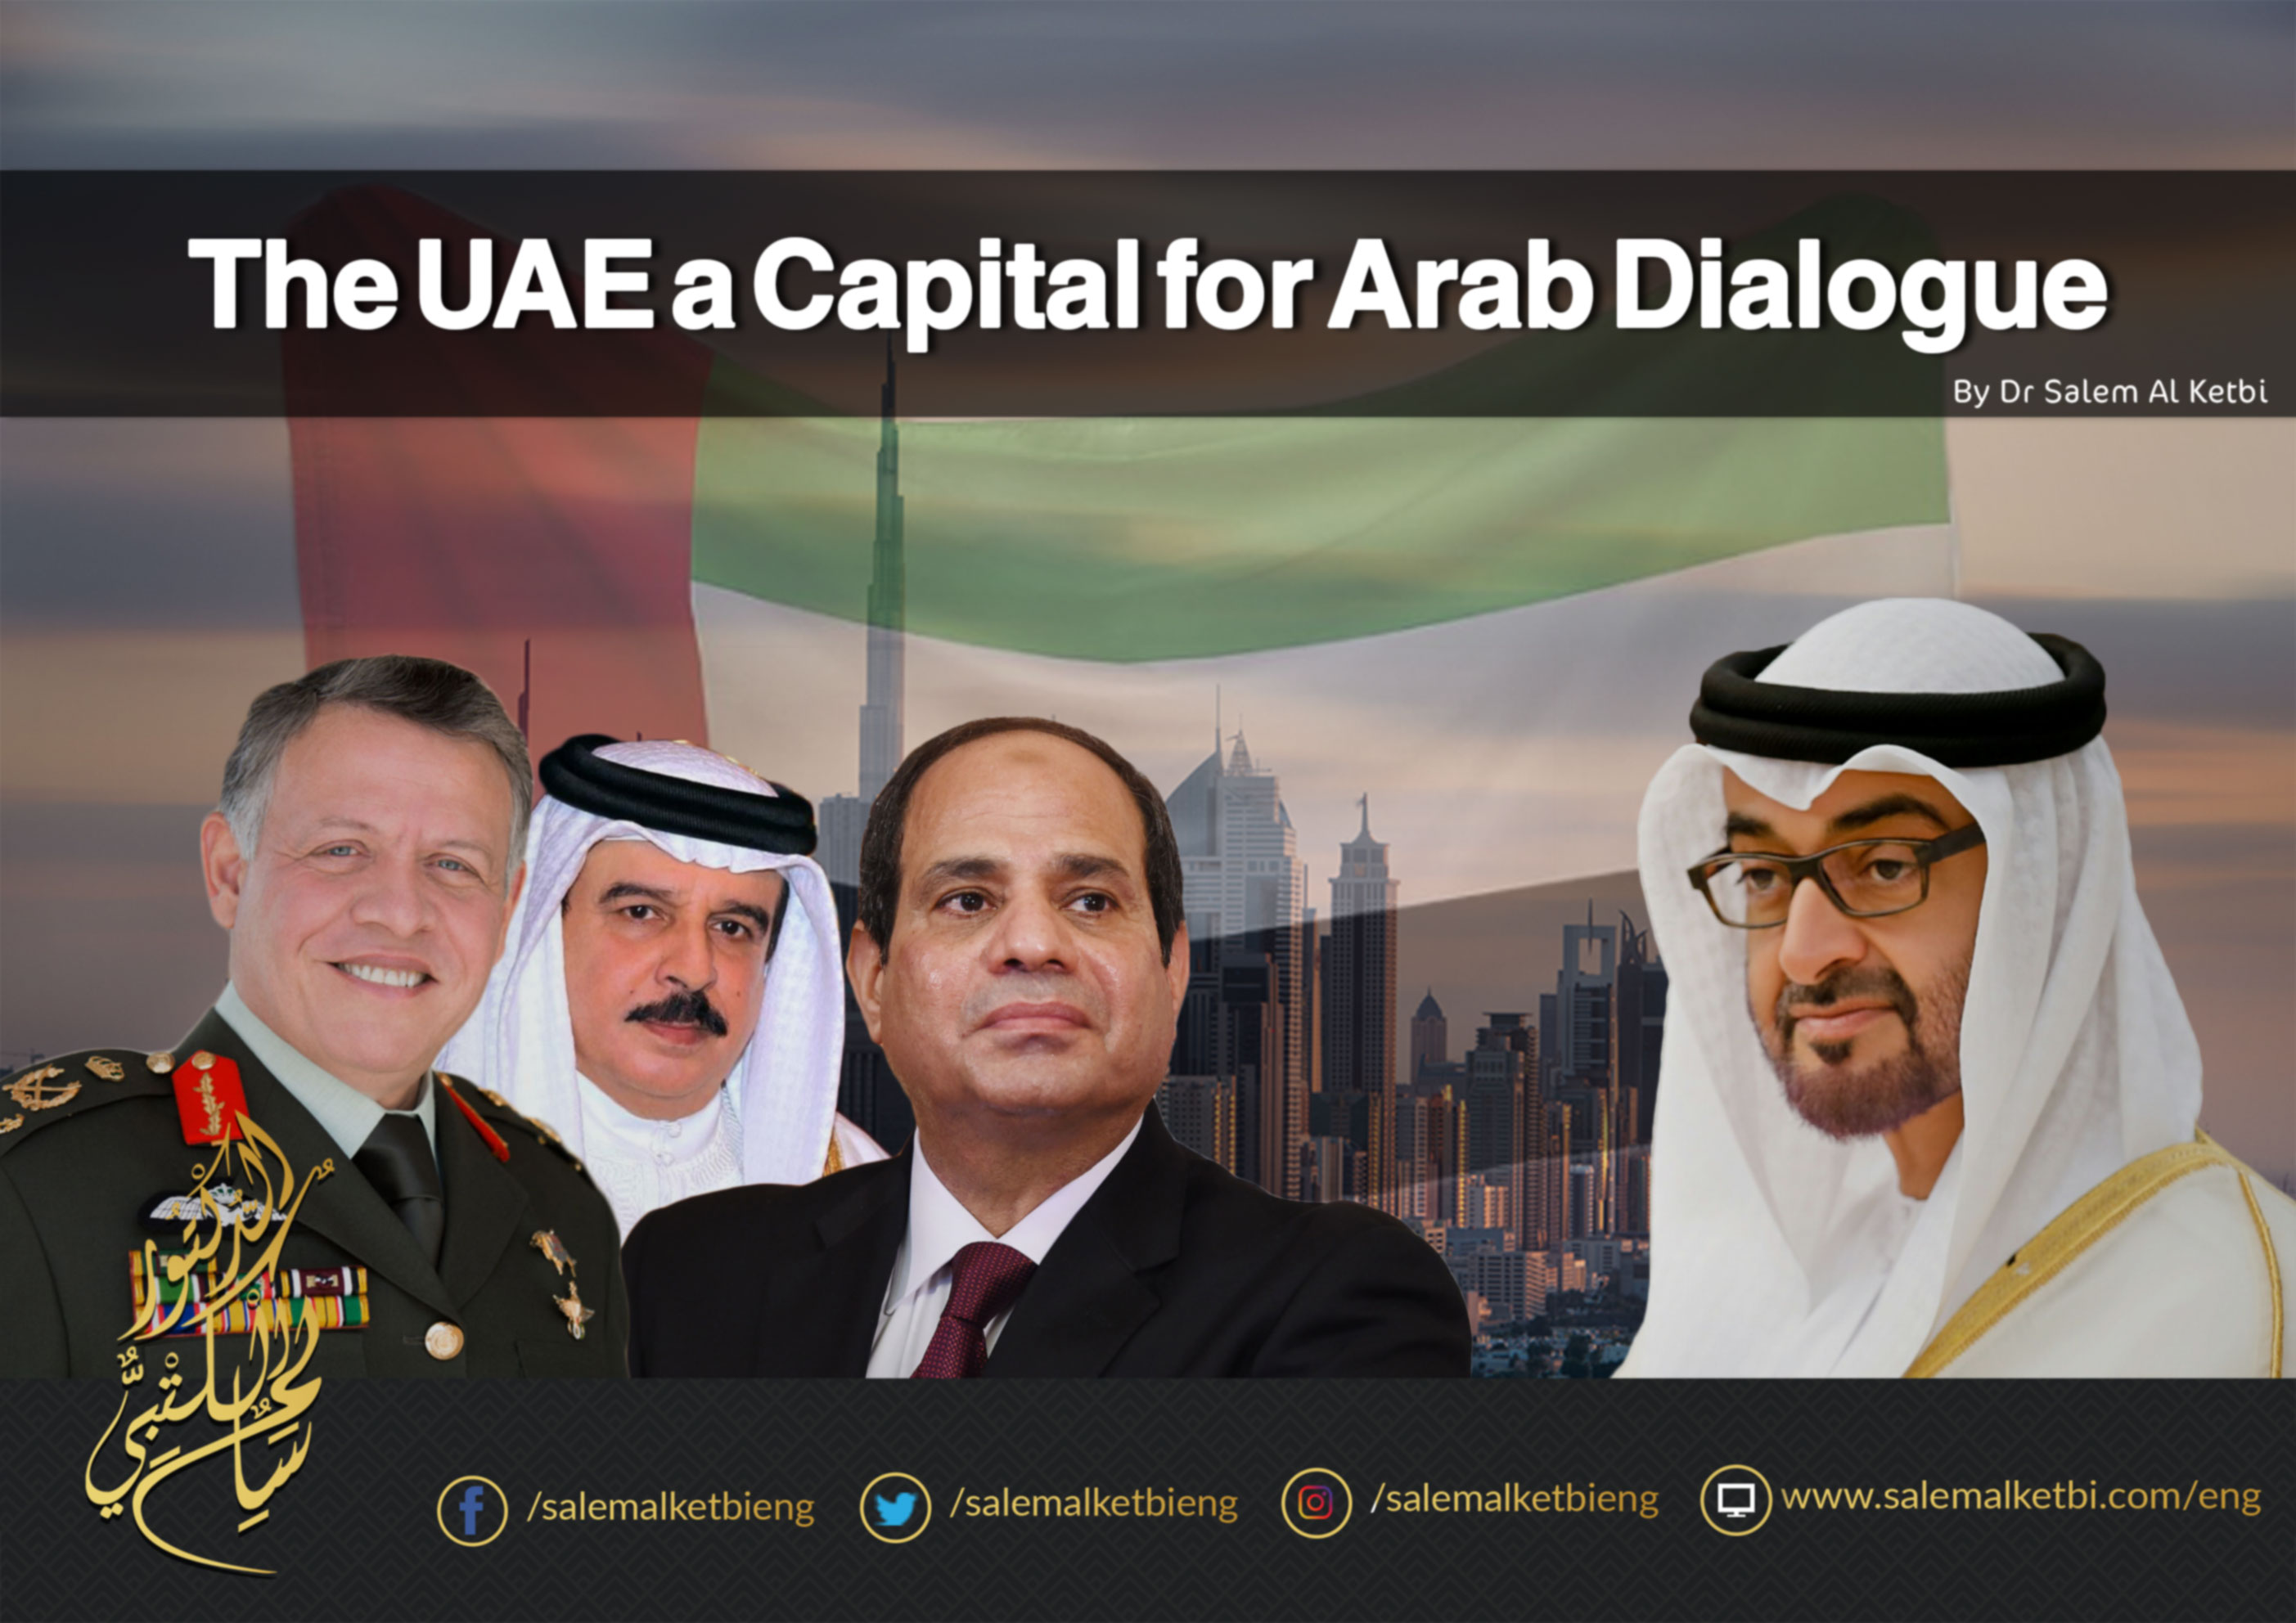 The UAE a Capital for Arab Dialogue